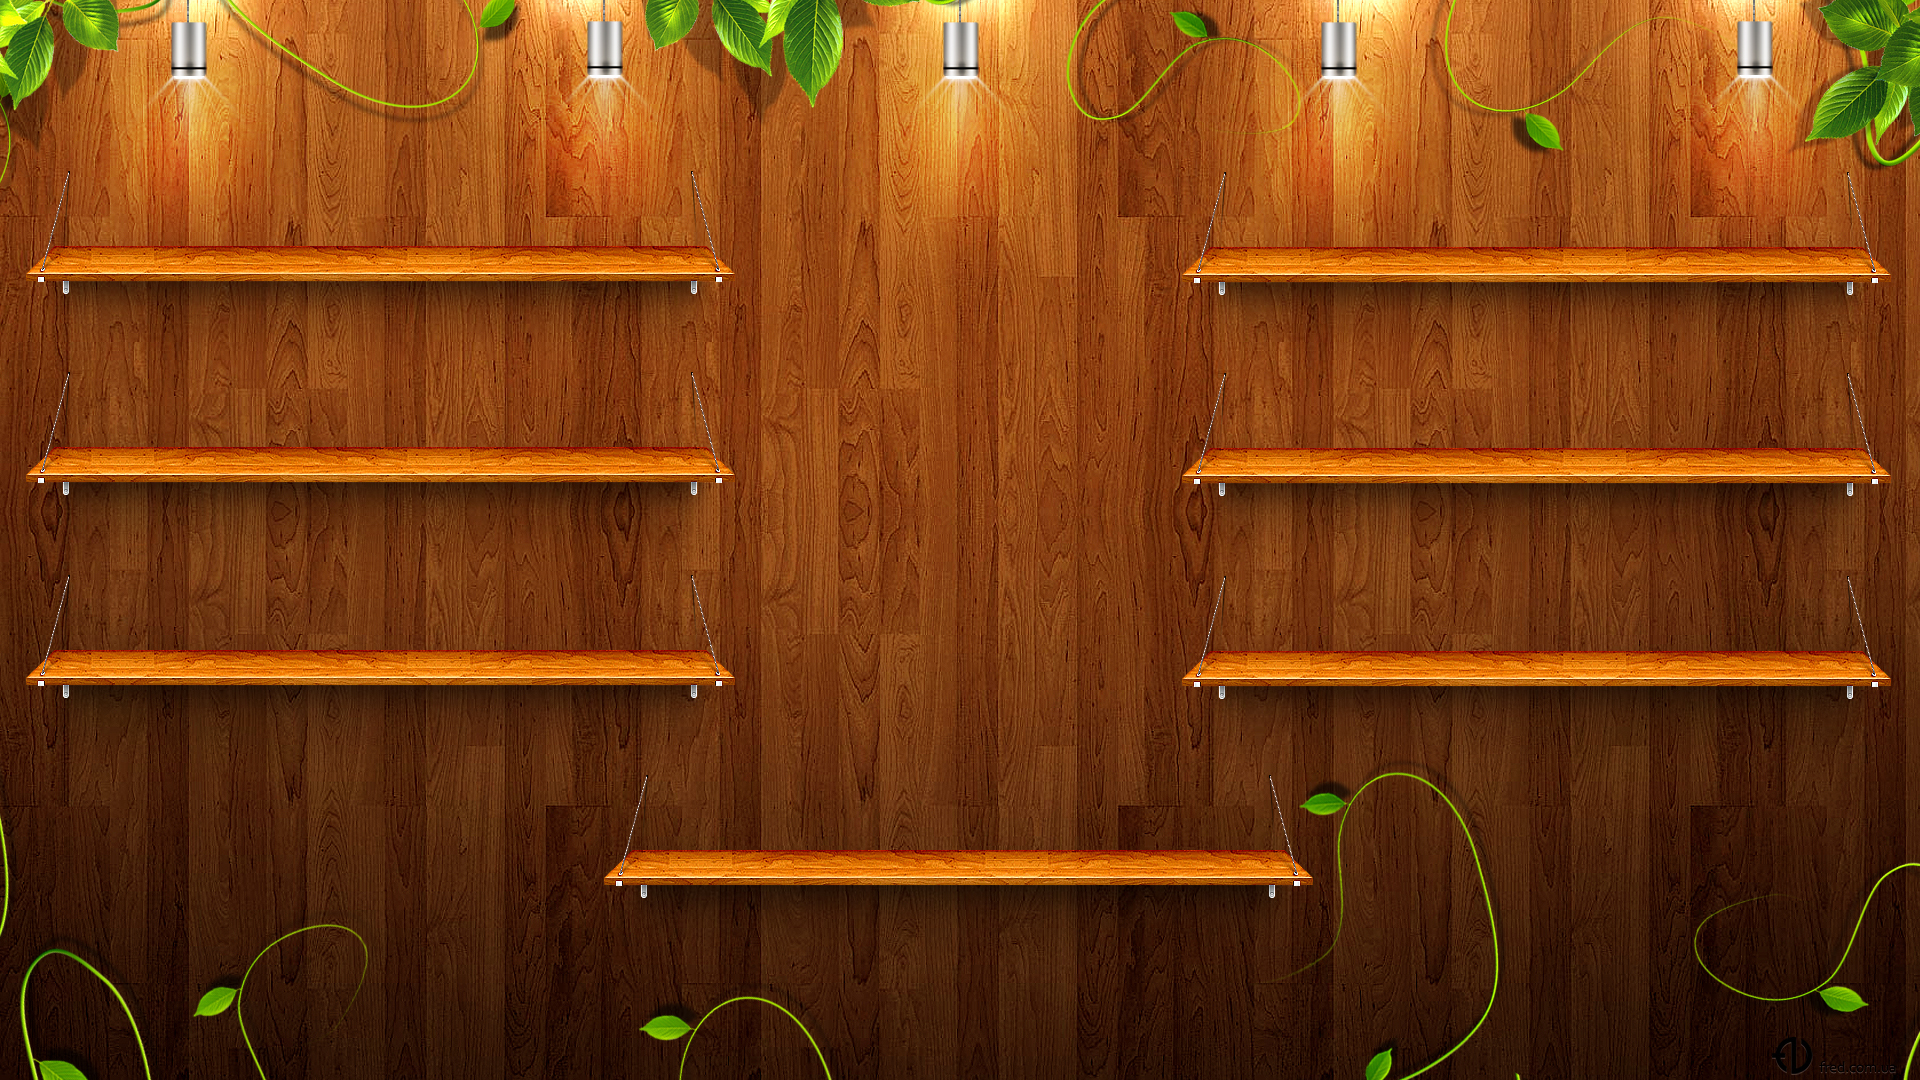 Wooden Desktop Wooden Shelves Wallpapers And Images Wallpapers